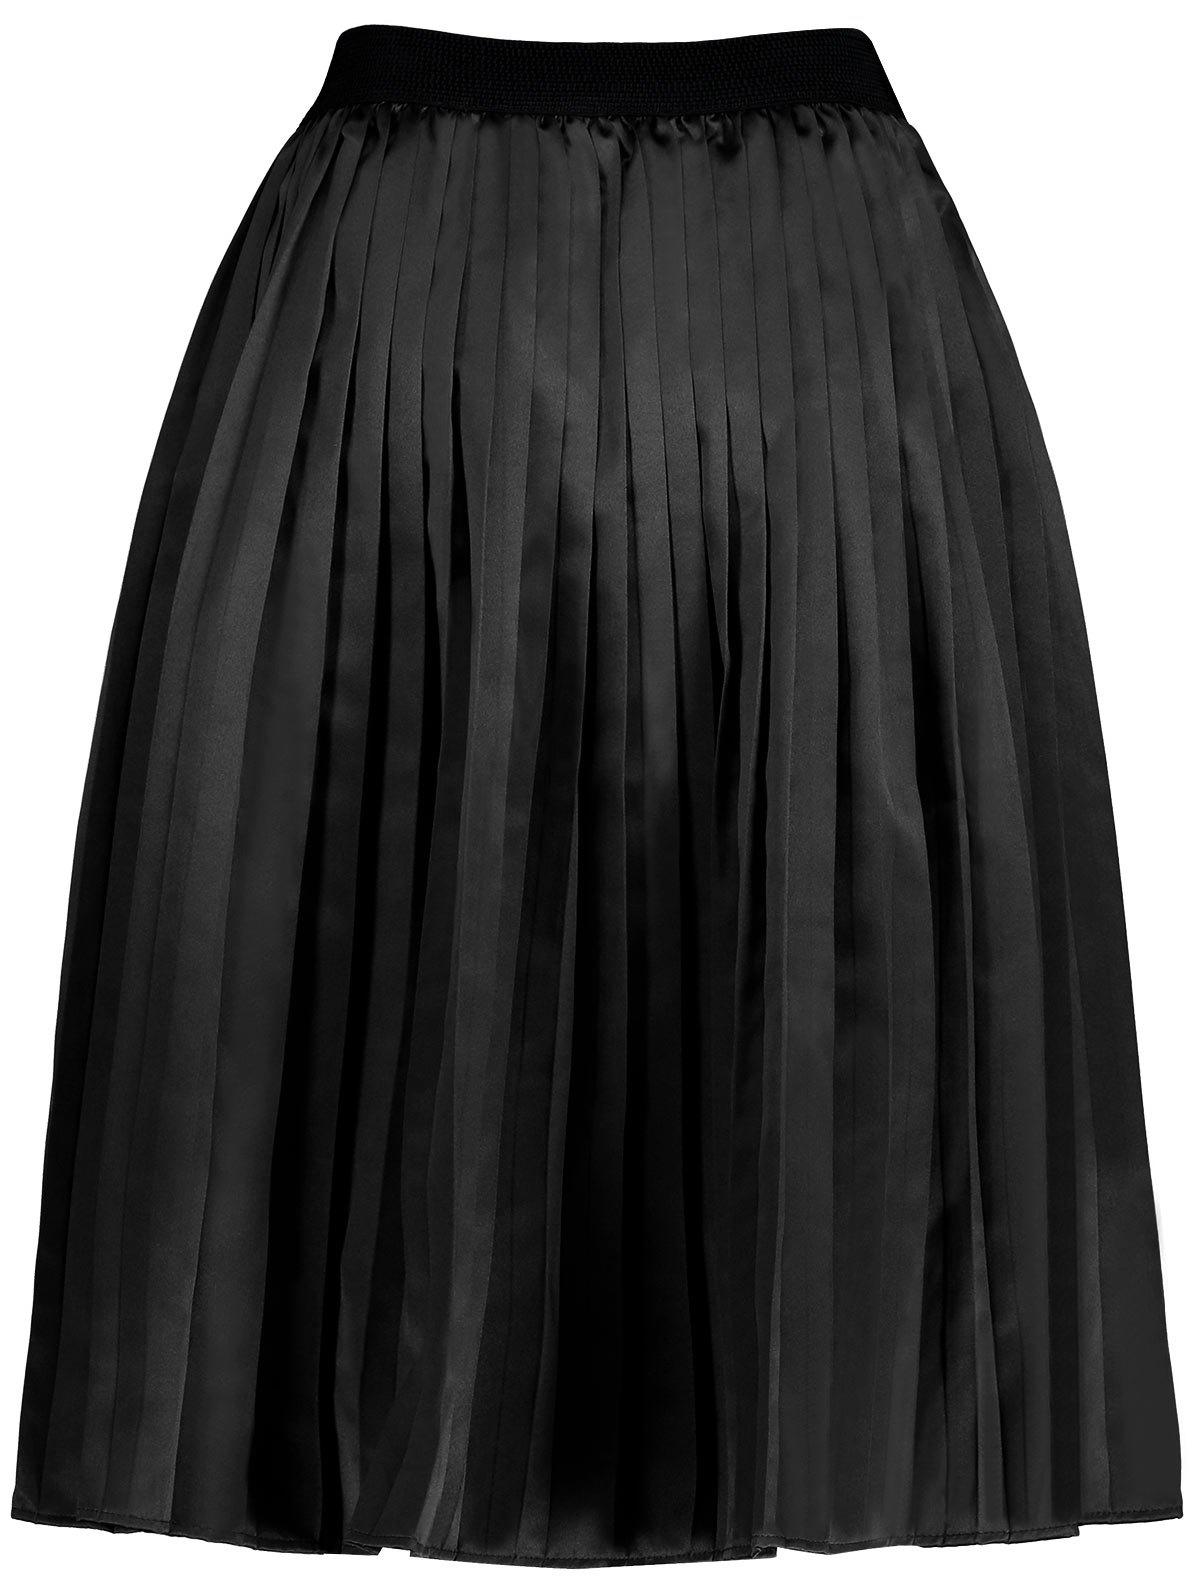 Plus Size Pleated Midi Elastic Waist Skirt - BLACK 3XL